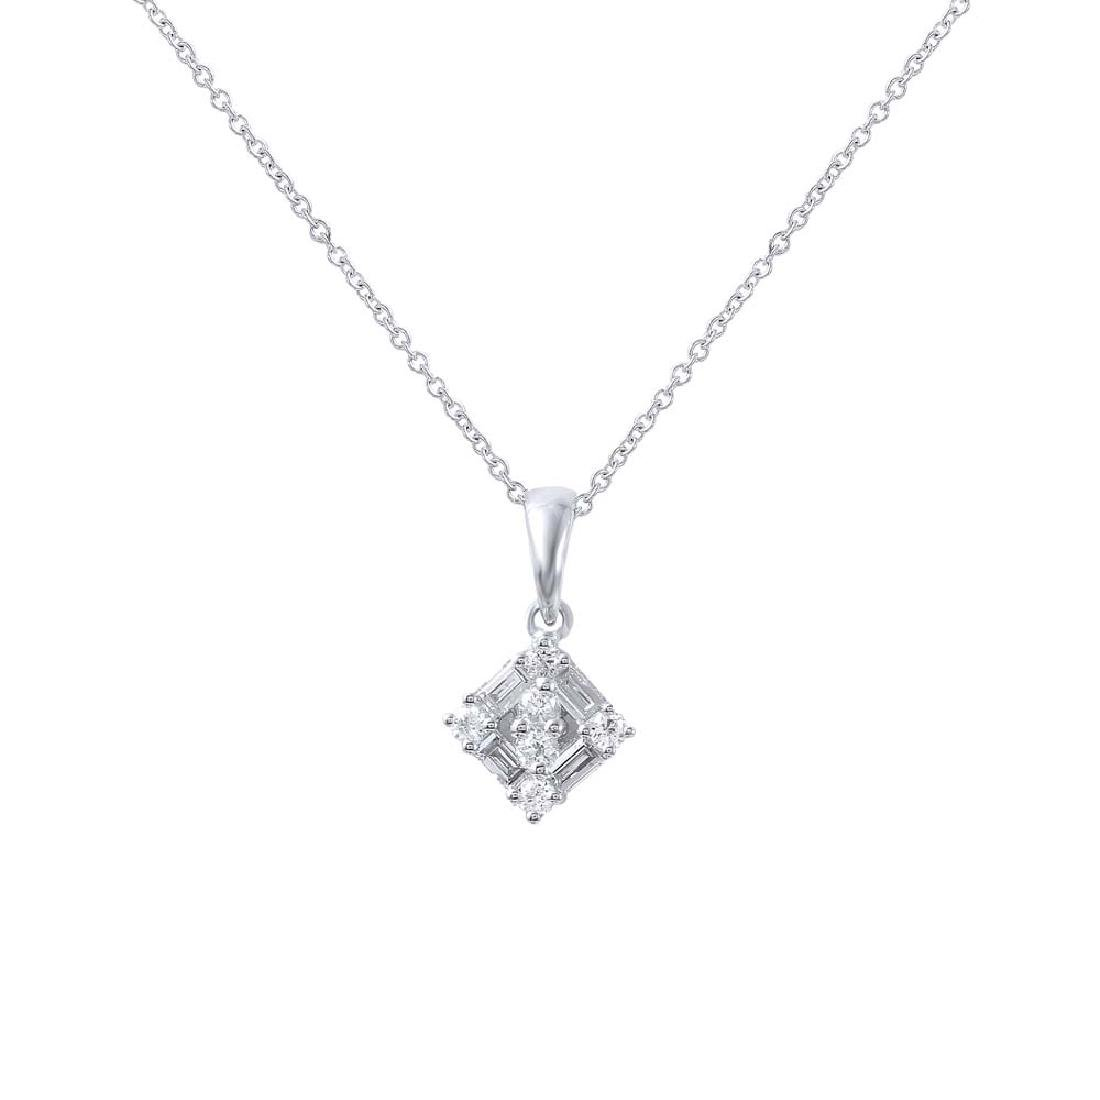 Genuine 0.29 TCW 18K White Gold Ladies Necklace